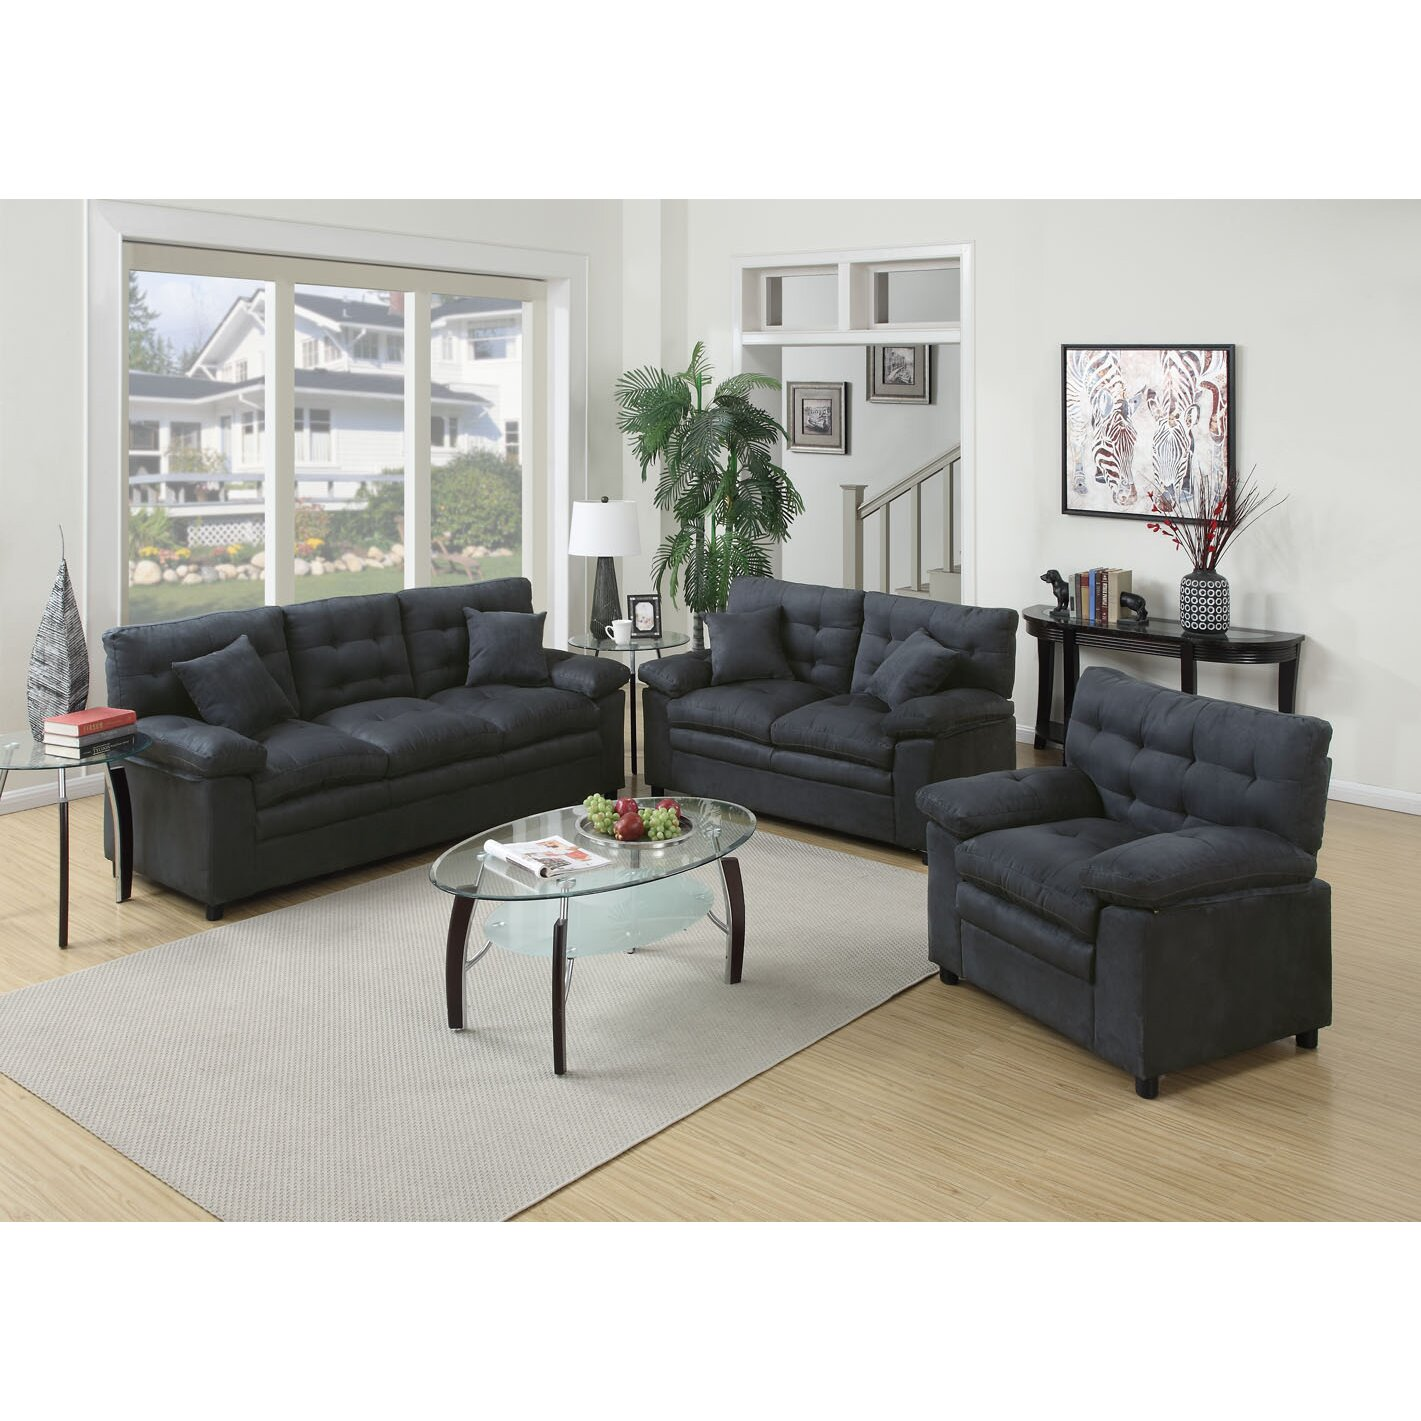 Poundex bobkona colona 3 piece living room set reviews Living room furniture images